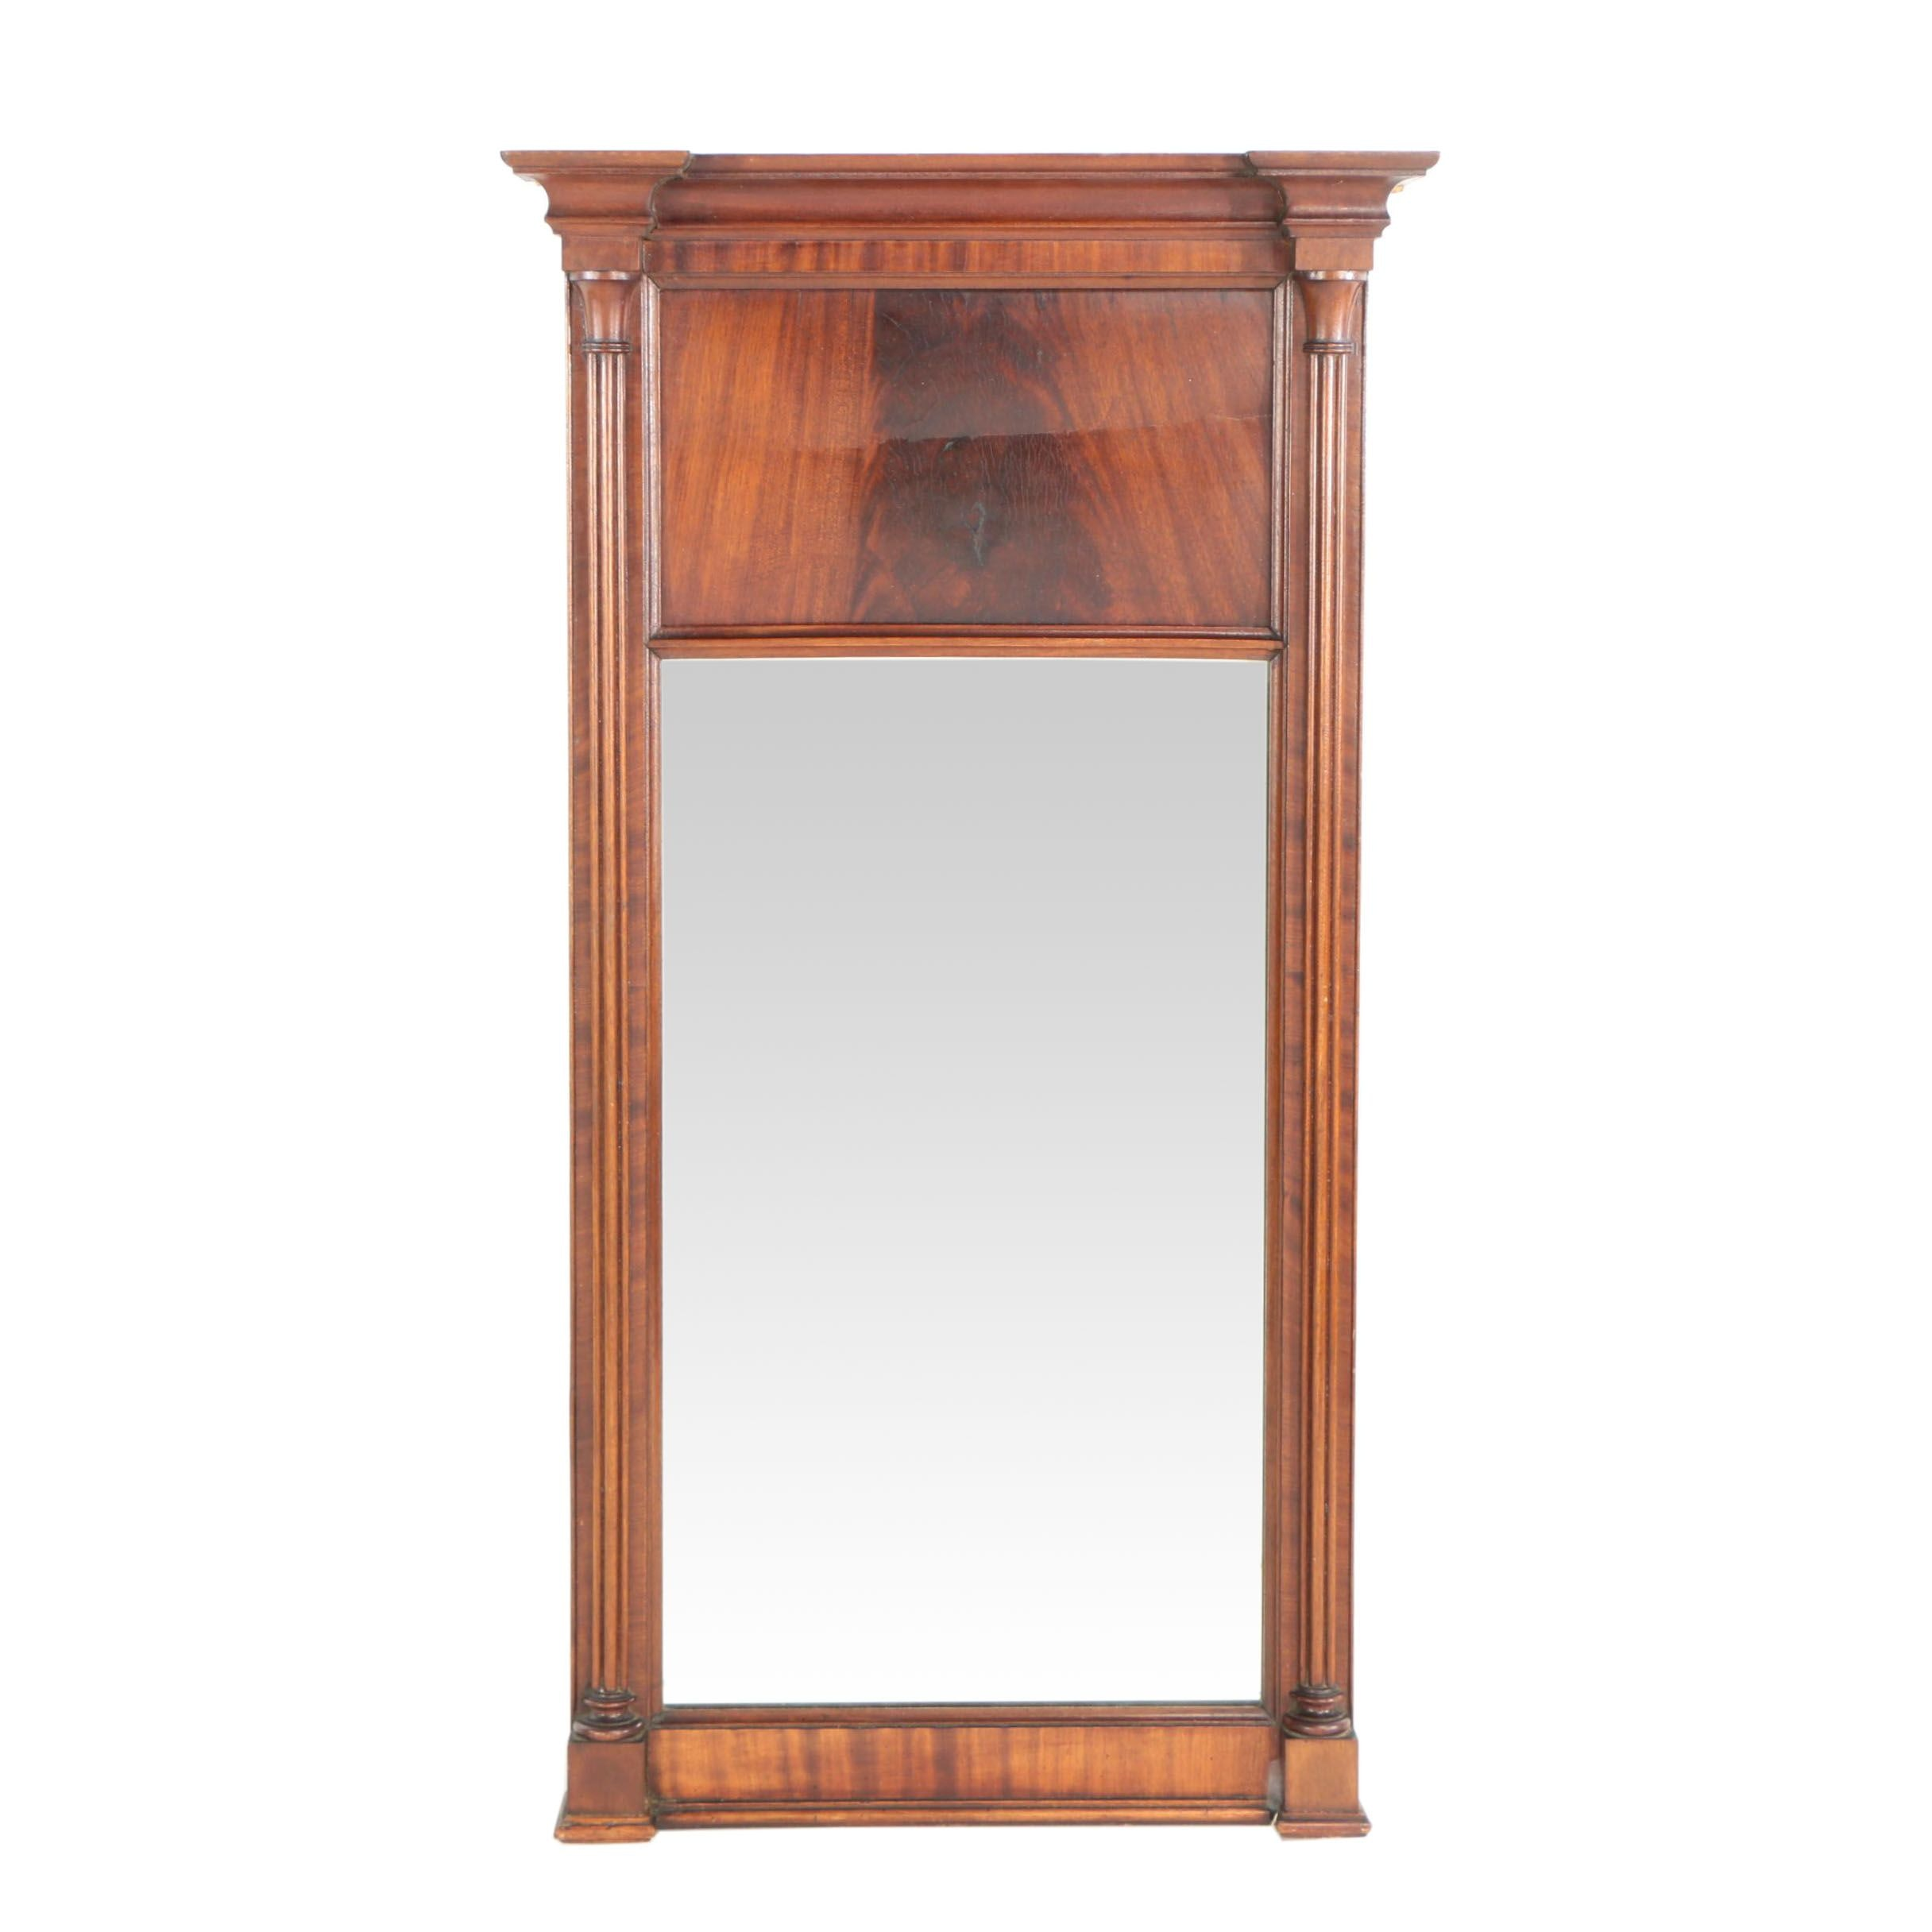 American Classical Carved Mahogany Mirror, Second Quarter 19th Century